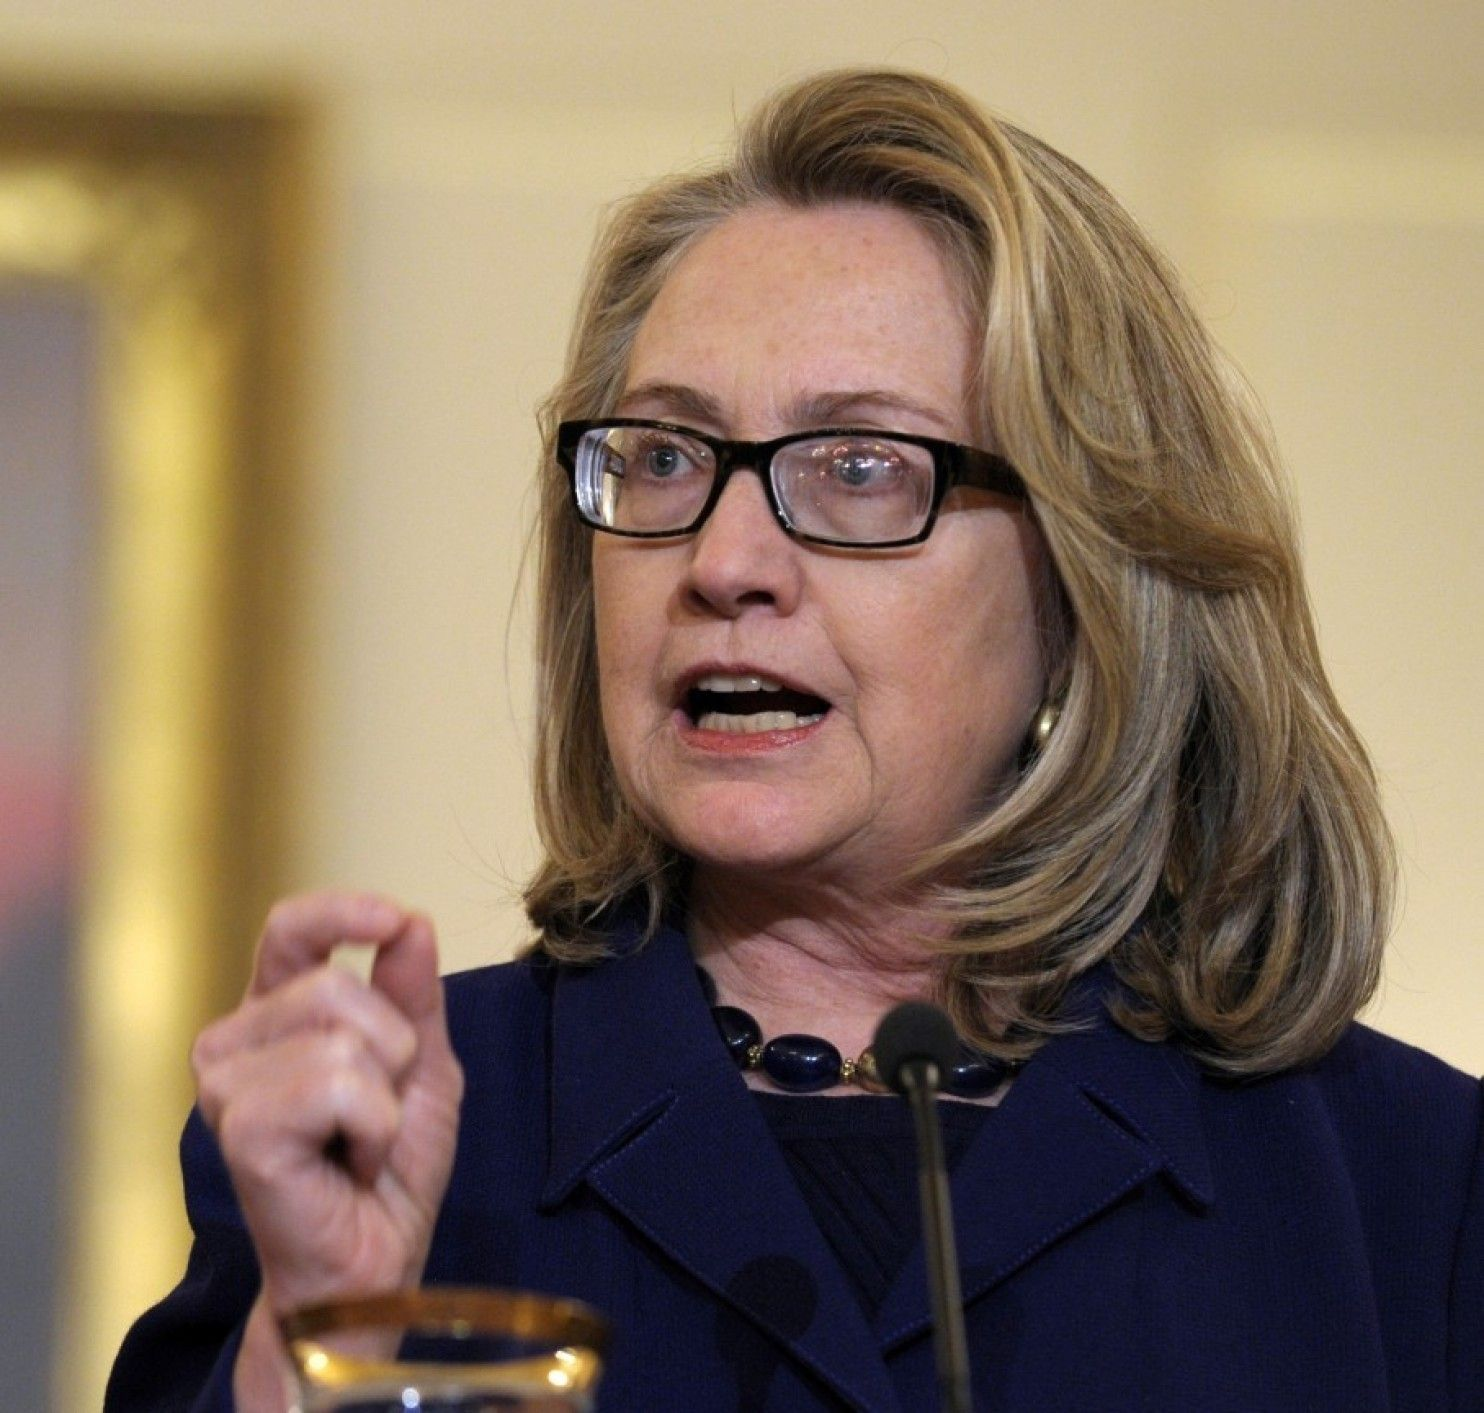 51 percent of Democrats say Benghazi is a legitimate issue for Hillary Clinton - The Washington Post